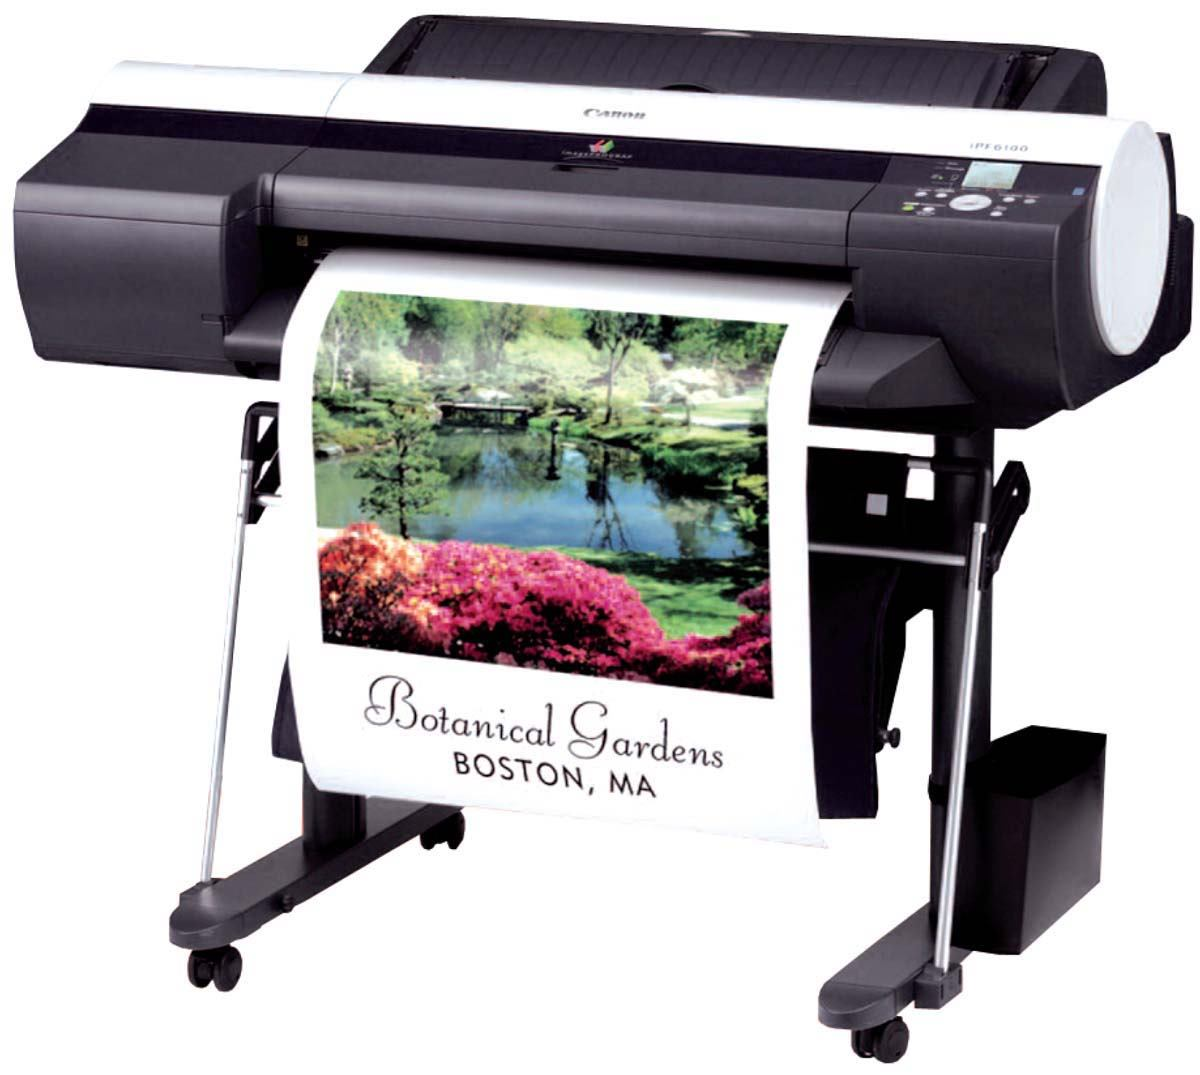 Canon m40 all in one system * cheapest a0 colour mfp on the market in the uk superb printer, superb scanner